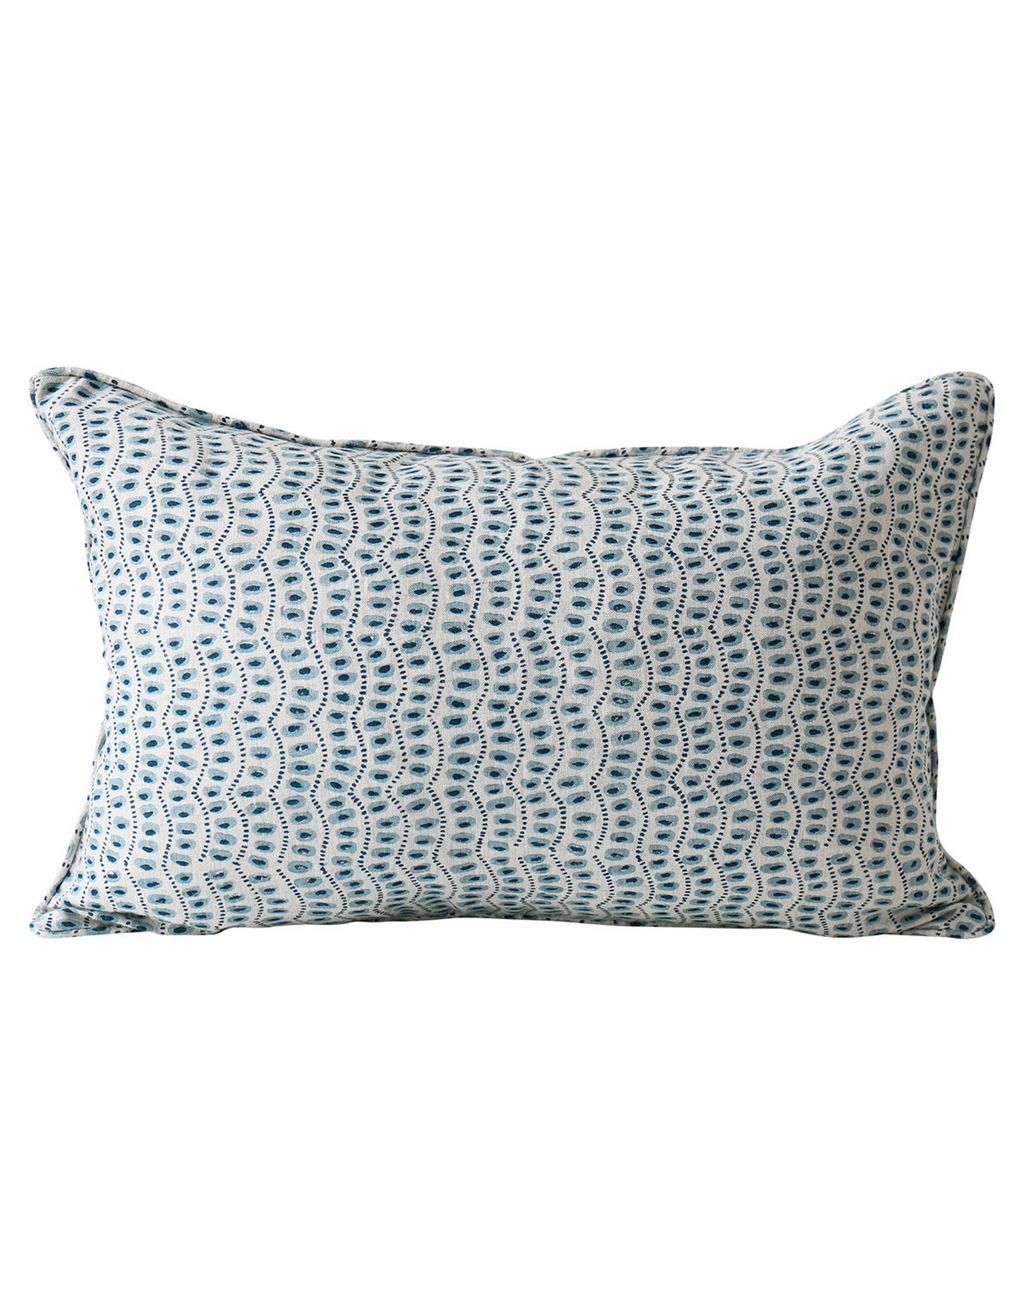 Amulet Linen Cushion in Azure 35x55cm by Walter G